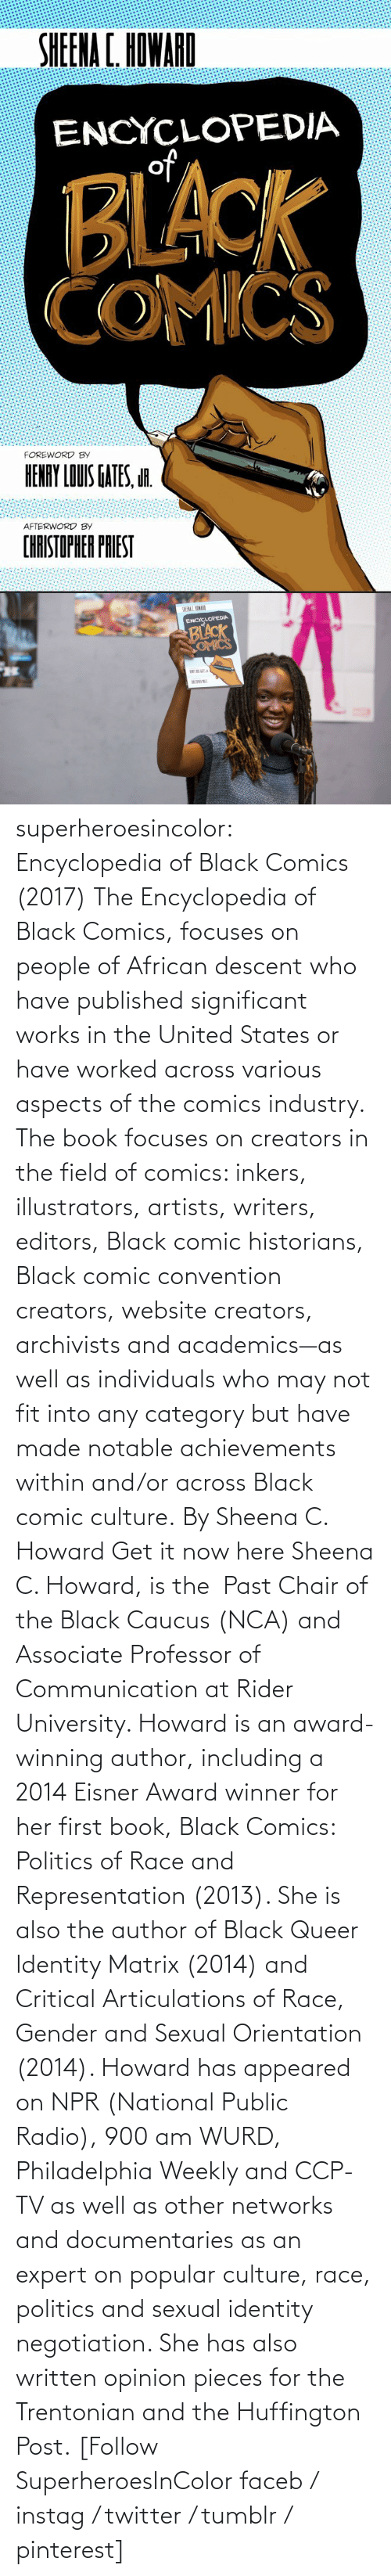 Radio: superheroesincolor: Encyclopedia of Black Comics (2017) The Encyclopedia of Black Comics, focuses on people of African descent who have published significant works in the United States or have worked across various aspects of the comics industry.  The book focuses on creators in the field of comics: inkers, illustrators, artists, writers, editors, Black comic historians, Black comic convention creators, website creators, archivists and academics—as well as individuals who may not fit into any category but have made notable achievements within and/or across Black comic culture. By Sheena C. Howard Get it now here  Sheena C. Howard, is the  Past Chair of the Black Caucus (NCA) and Associate Professor of Communication at Rider University. Howard is an award-winning author, including a 2014 Eisner Award winner for her first book, Black Comics: Politics of Race and Representation (2013). She is also the author of Black Queer Identity Matrix (2014) and Critical Articulations of Race, Gender and Sexual Orientation (2014). Howard has appeared on NPR (National Public Radio), 900 am WURD, Philadelphia Weekly and CCP-TV as well as other networks and documentaries as an expert on popular culture, race, politics and sexual identity negotiation. She has also written opinion pieces for the Trentonian and the Huffington Post.   [Follow SuperheroesInColor faceb / instag / twitter / tumblr / pinterest]